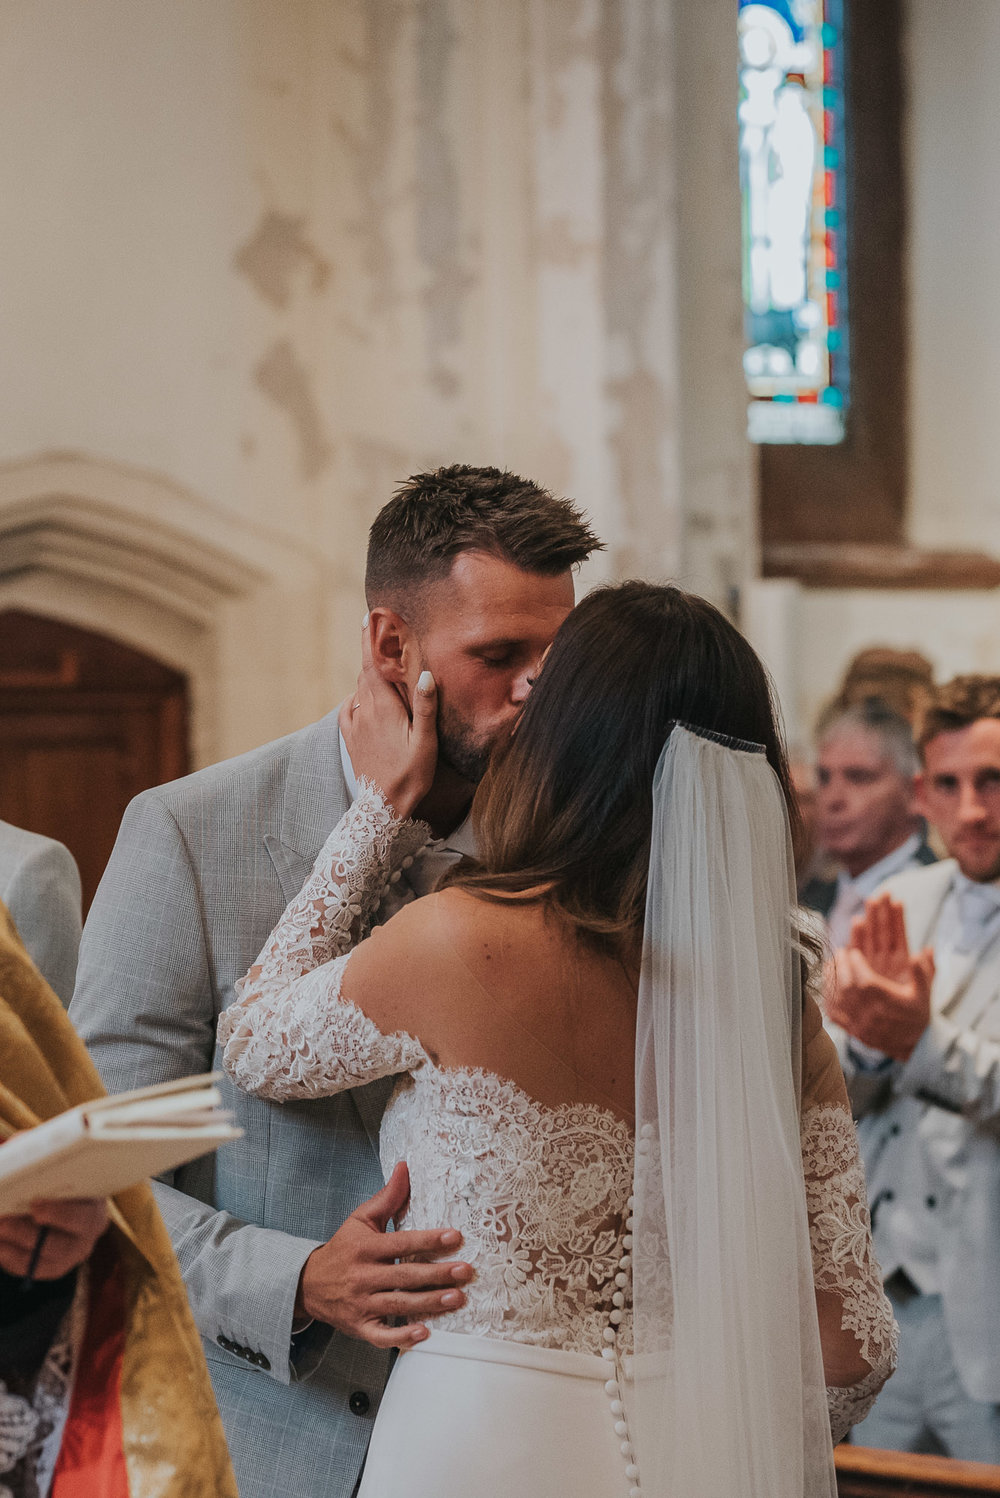 bride and groom share their first kiss in the church